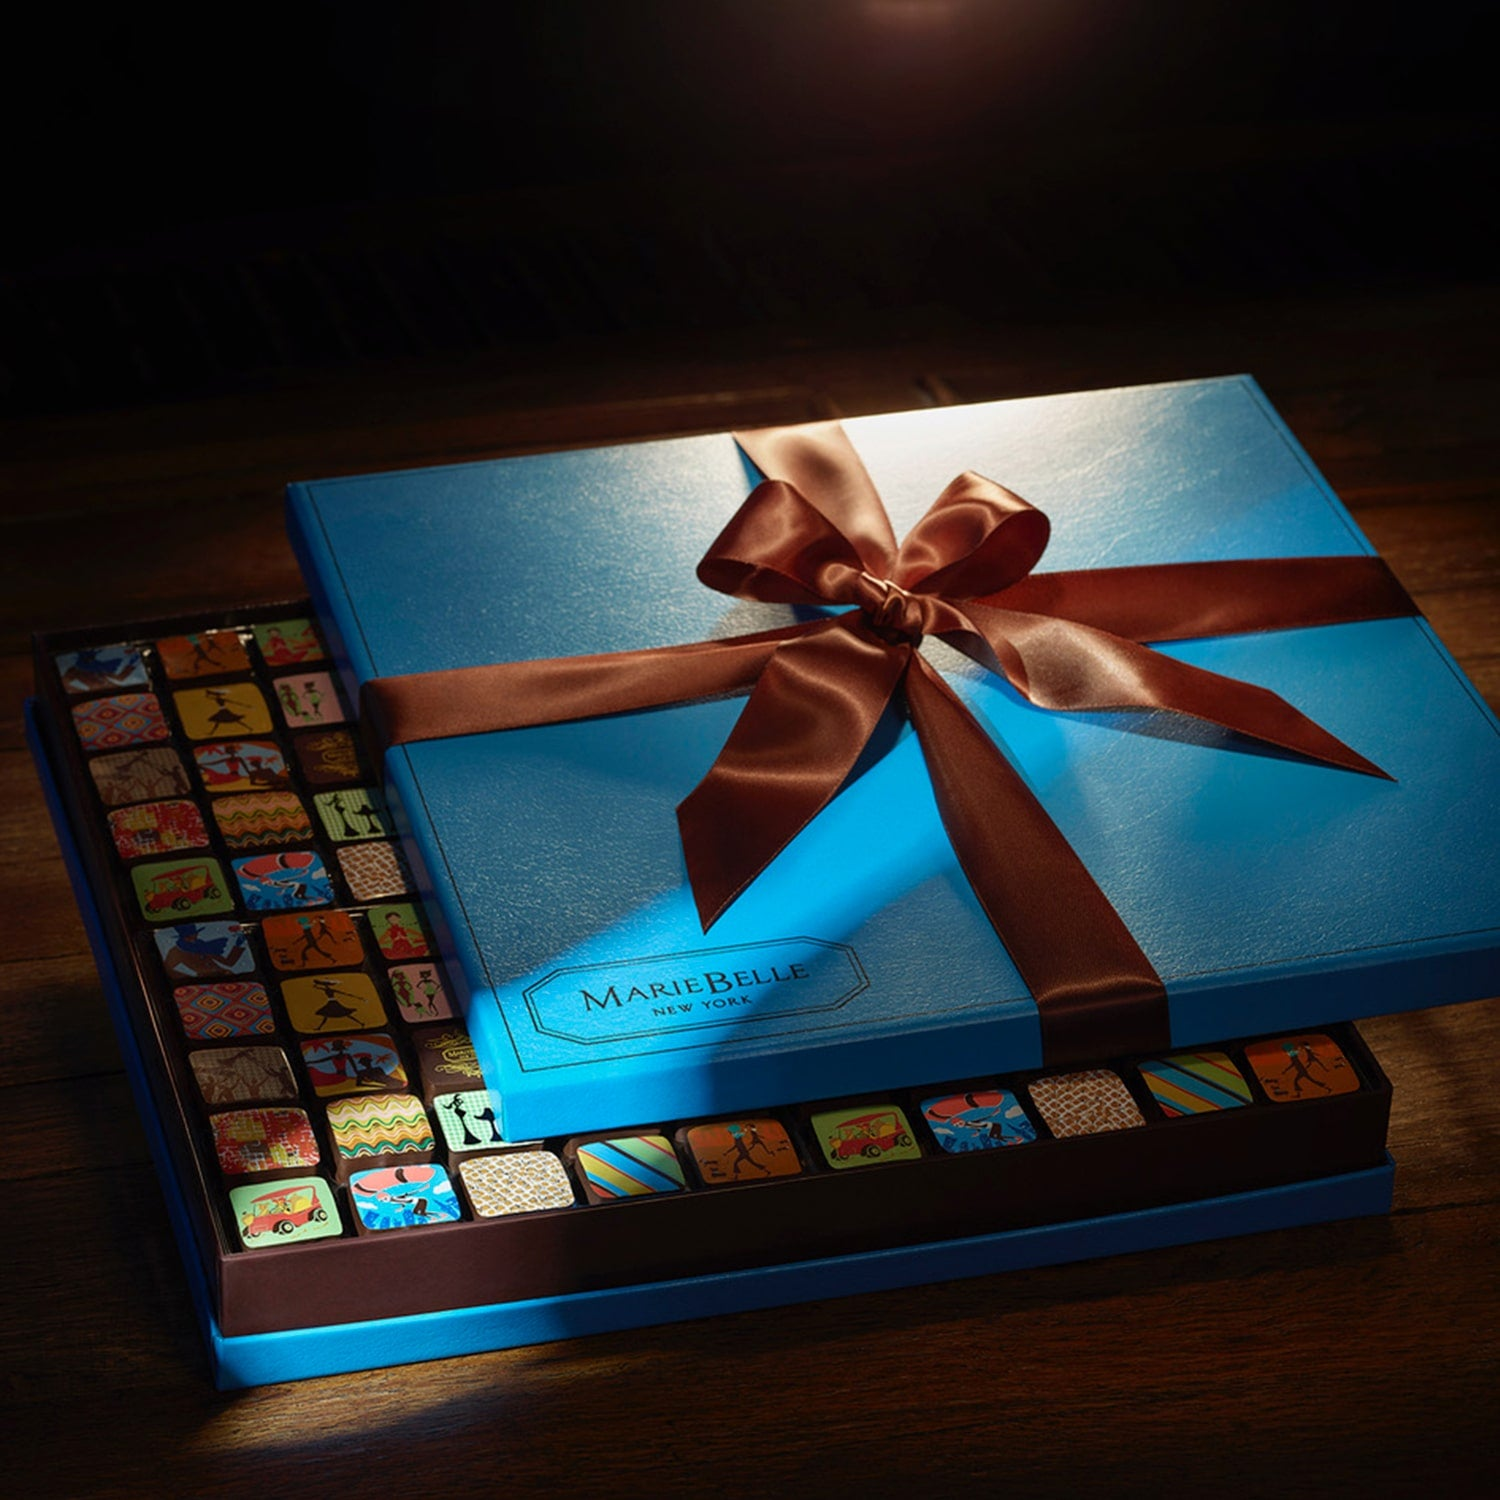 Signature ganache and truffles collection image featuring the signature 100pc Cien Ganache Blue Box.